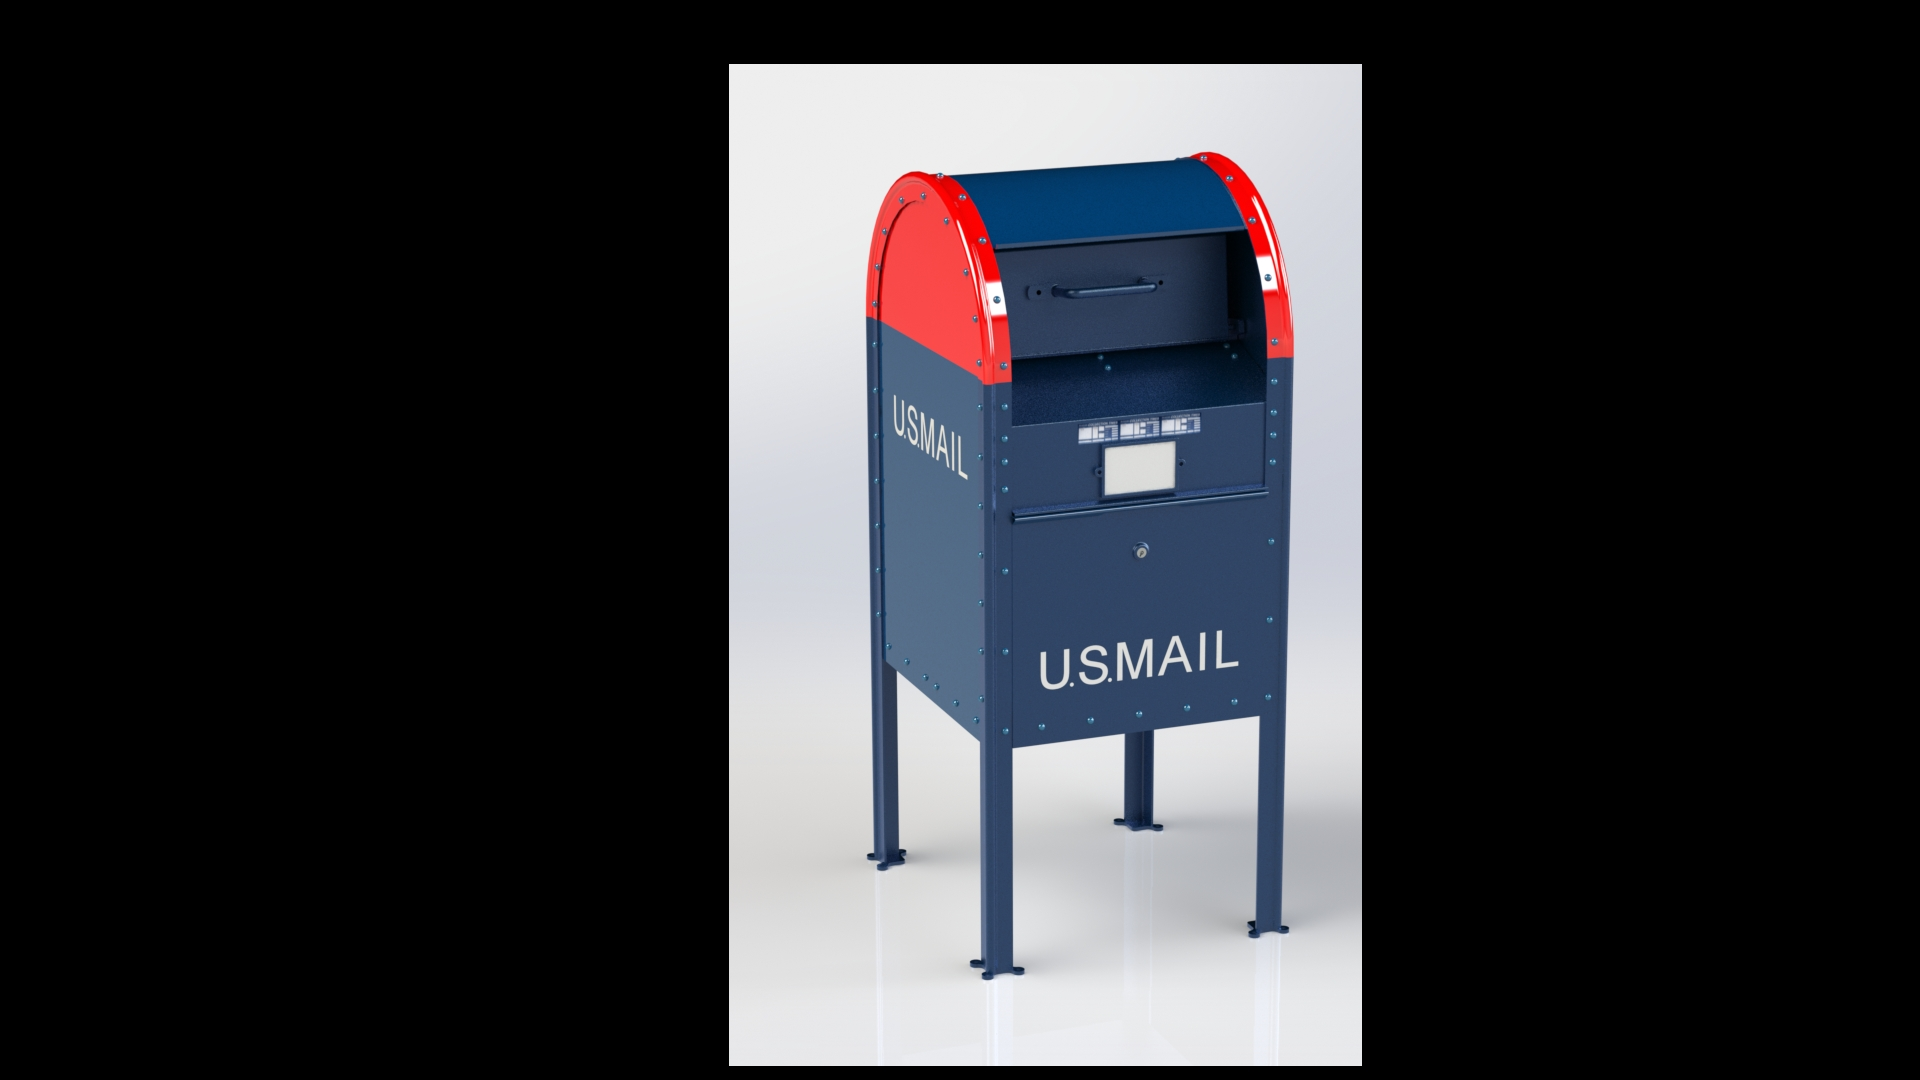 USPS%20Street%20Collection%20Mailbox%20in%20SolidWorks